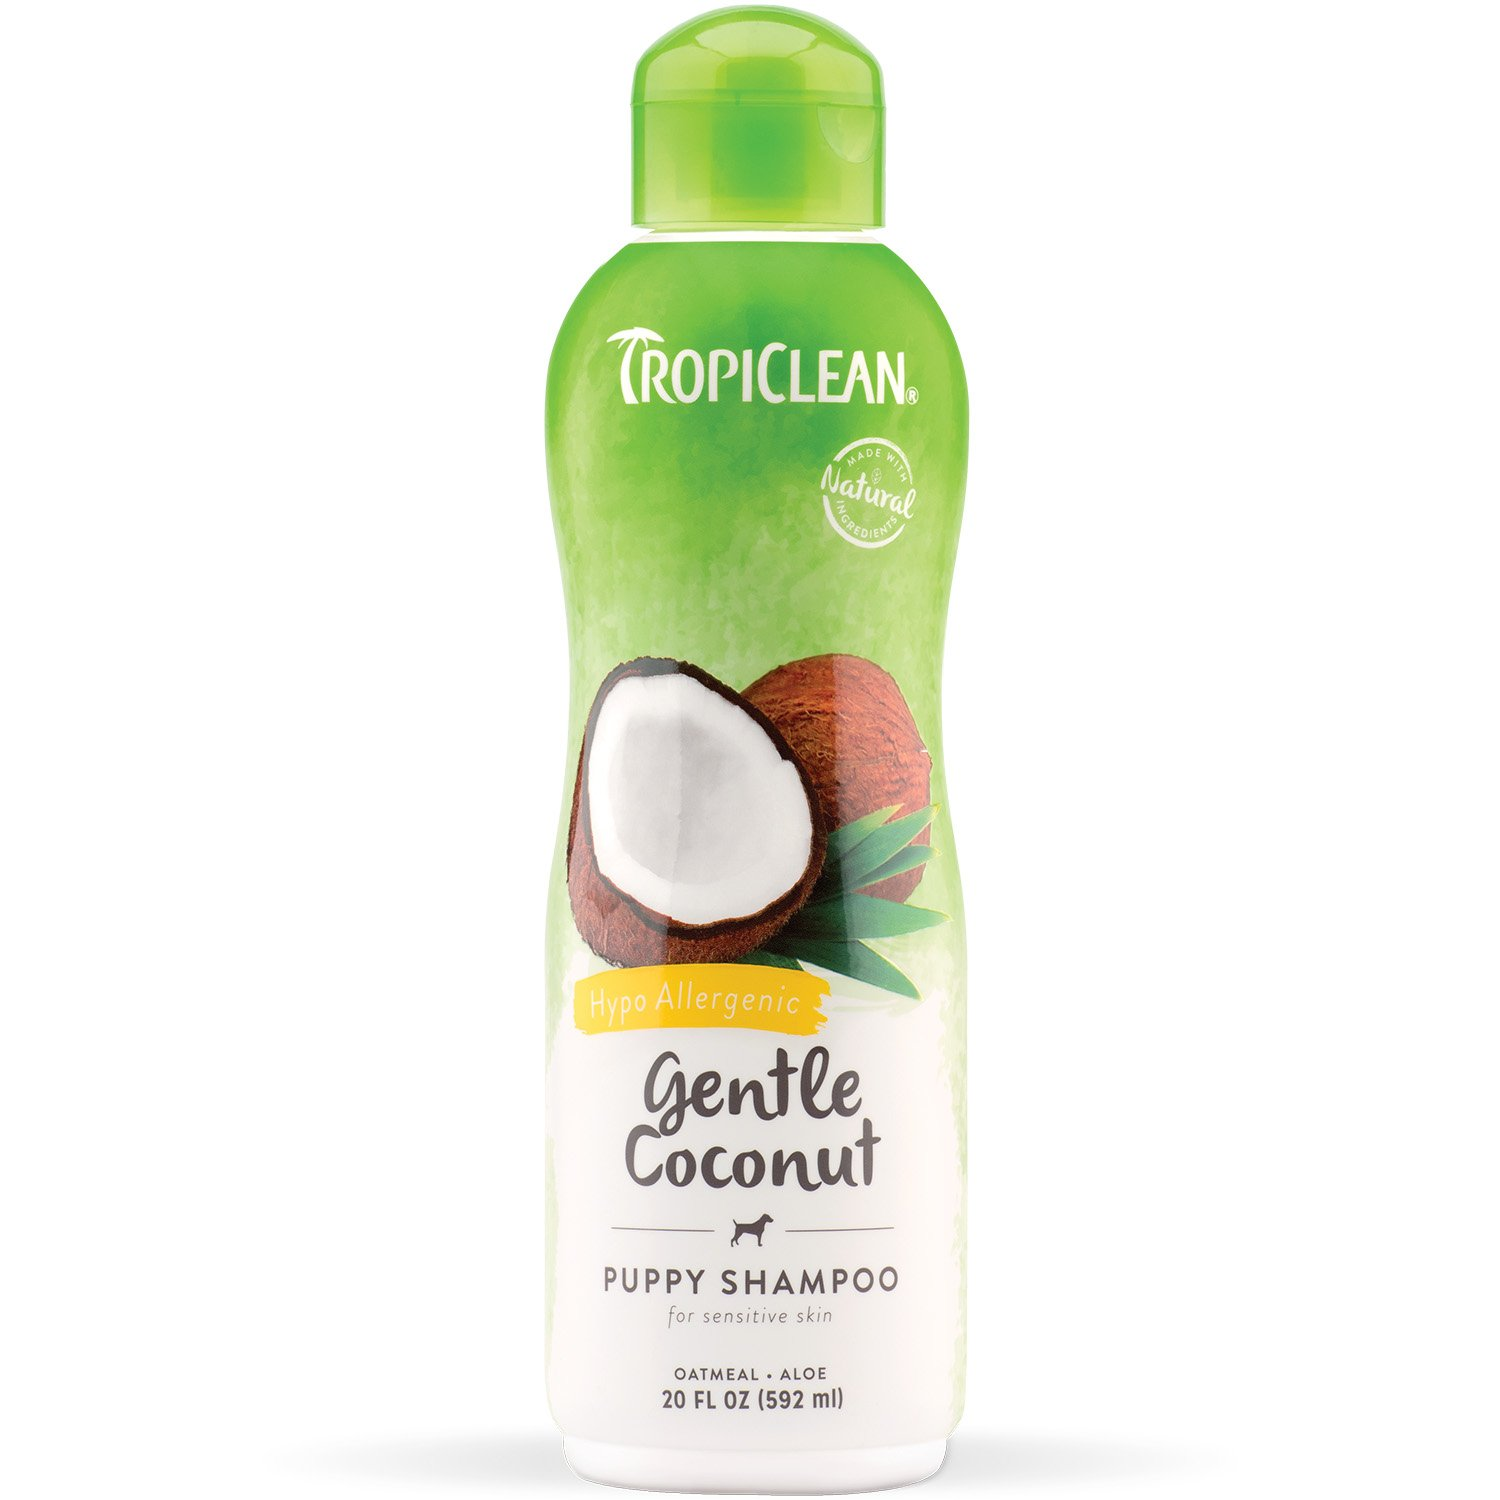 TropiClean Gentle Coconut Puppy Shampoo, Mild Shampoo for Puppies, Kittens and Pets with Allergies, Hypoallergenic Tearless Pet Shampoo, 20 oz.